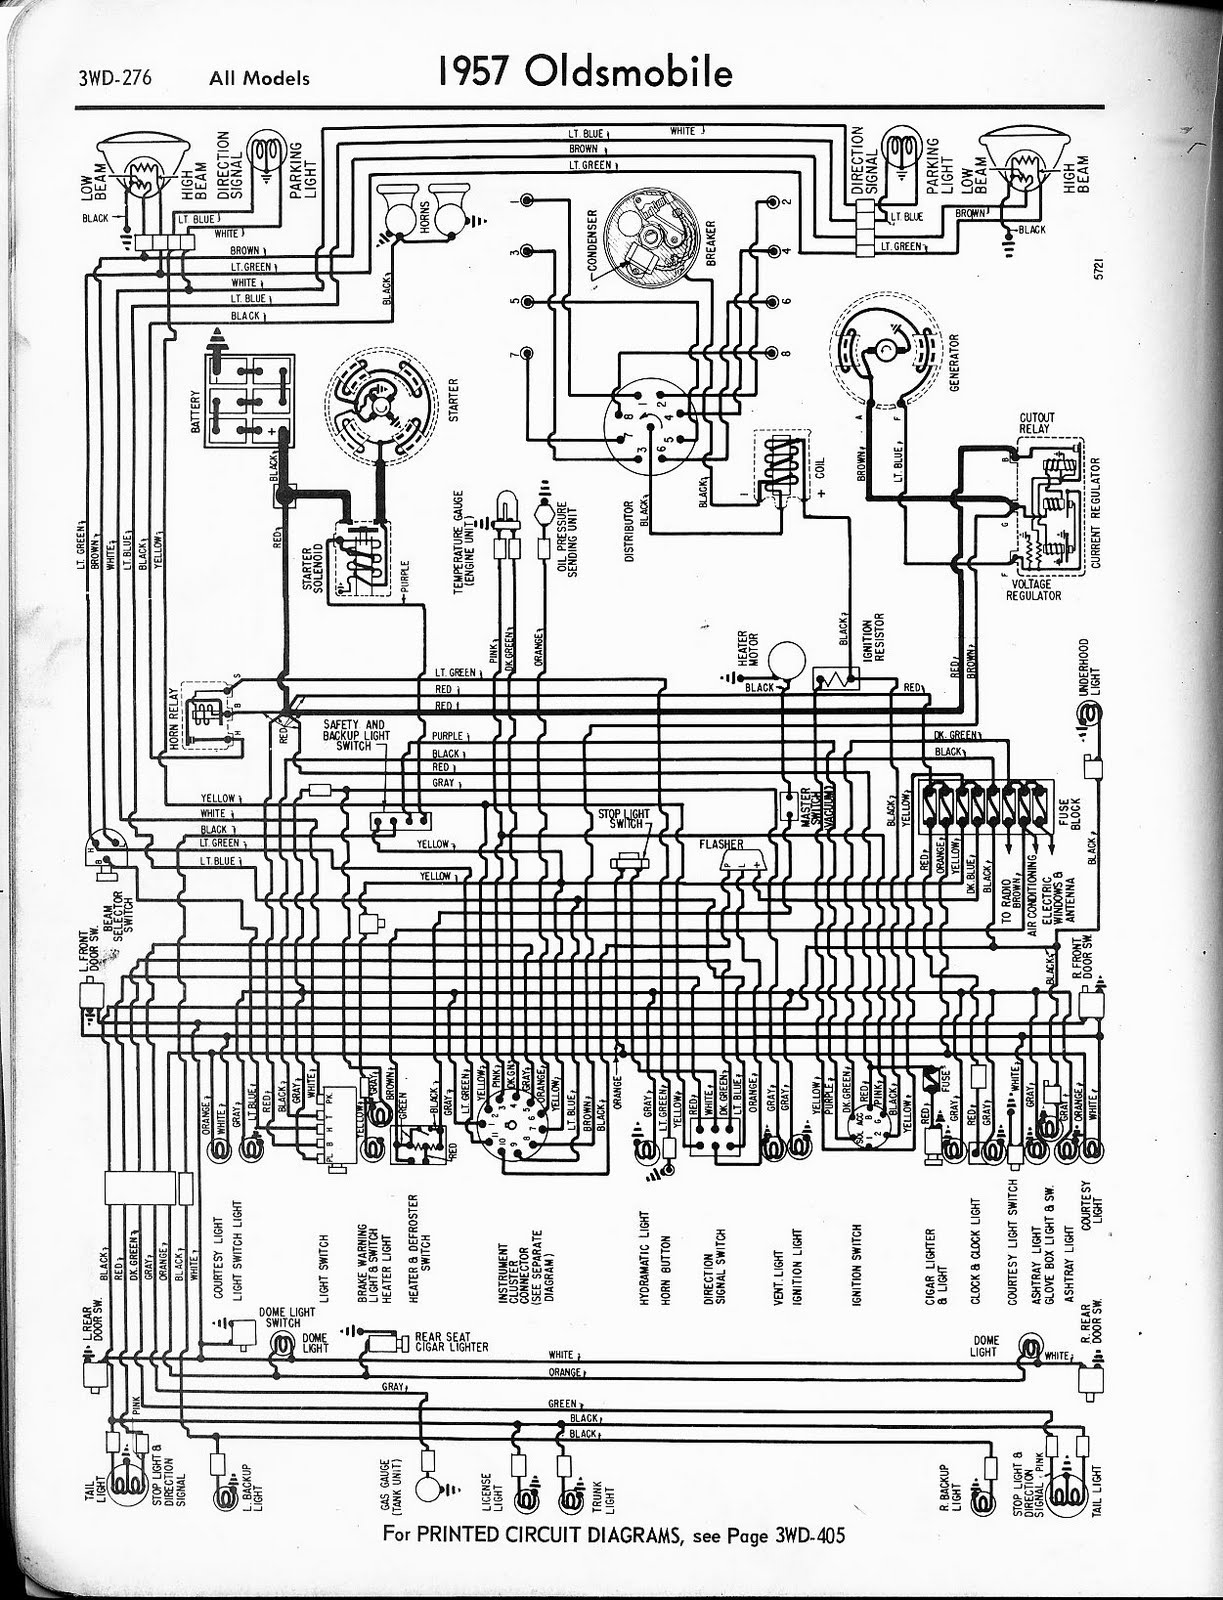 1977 Porsche Fuse Box Trusted Wiring Diagrams 924 Fan Free Auto Diagram 1957 Oldsmobile 911 1978